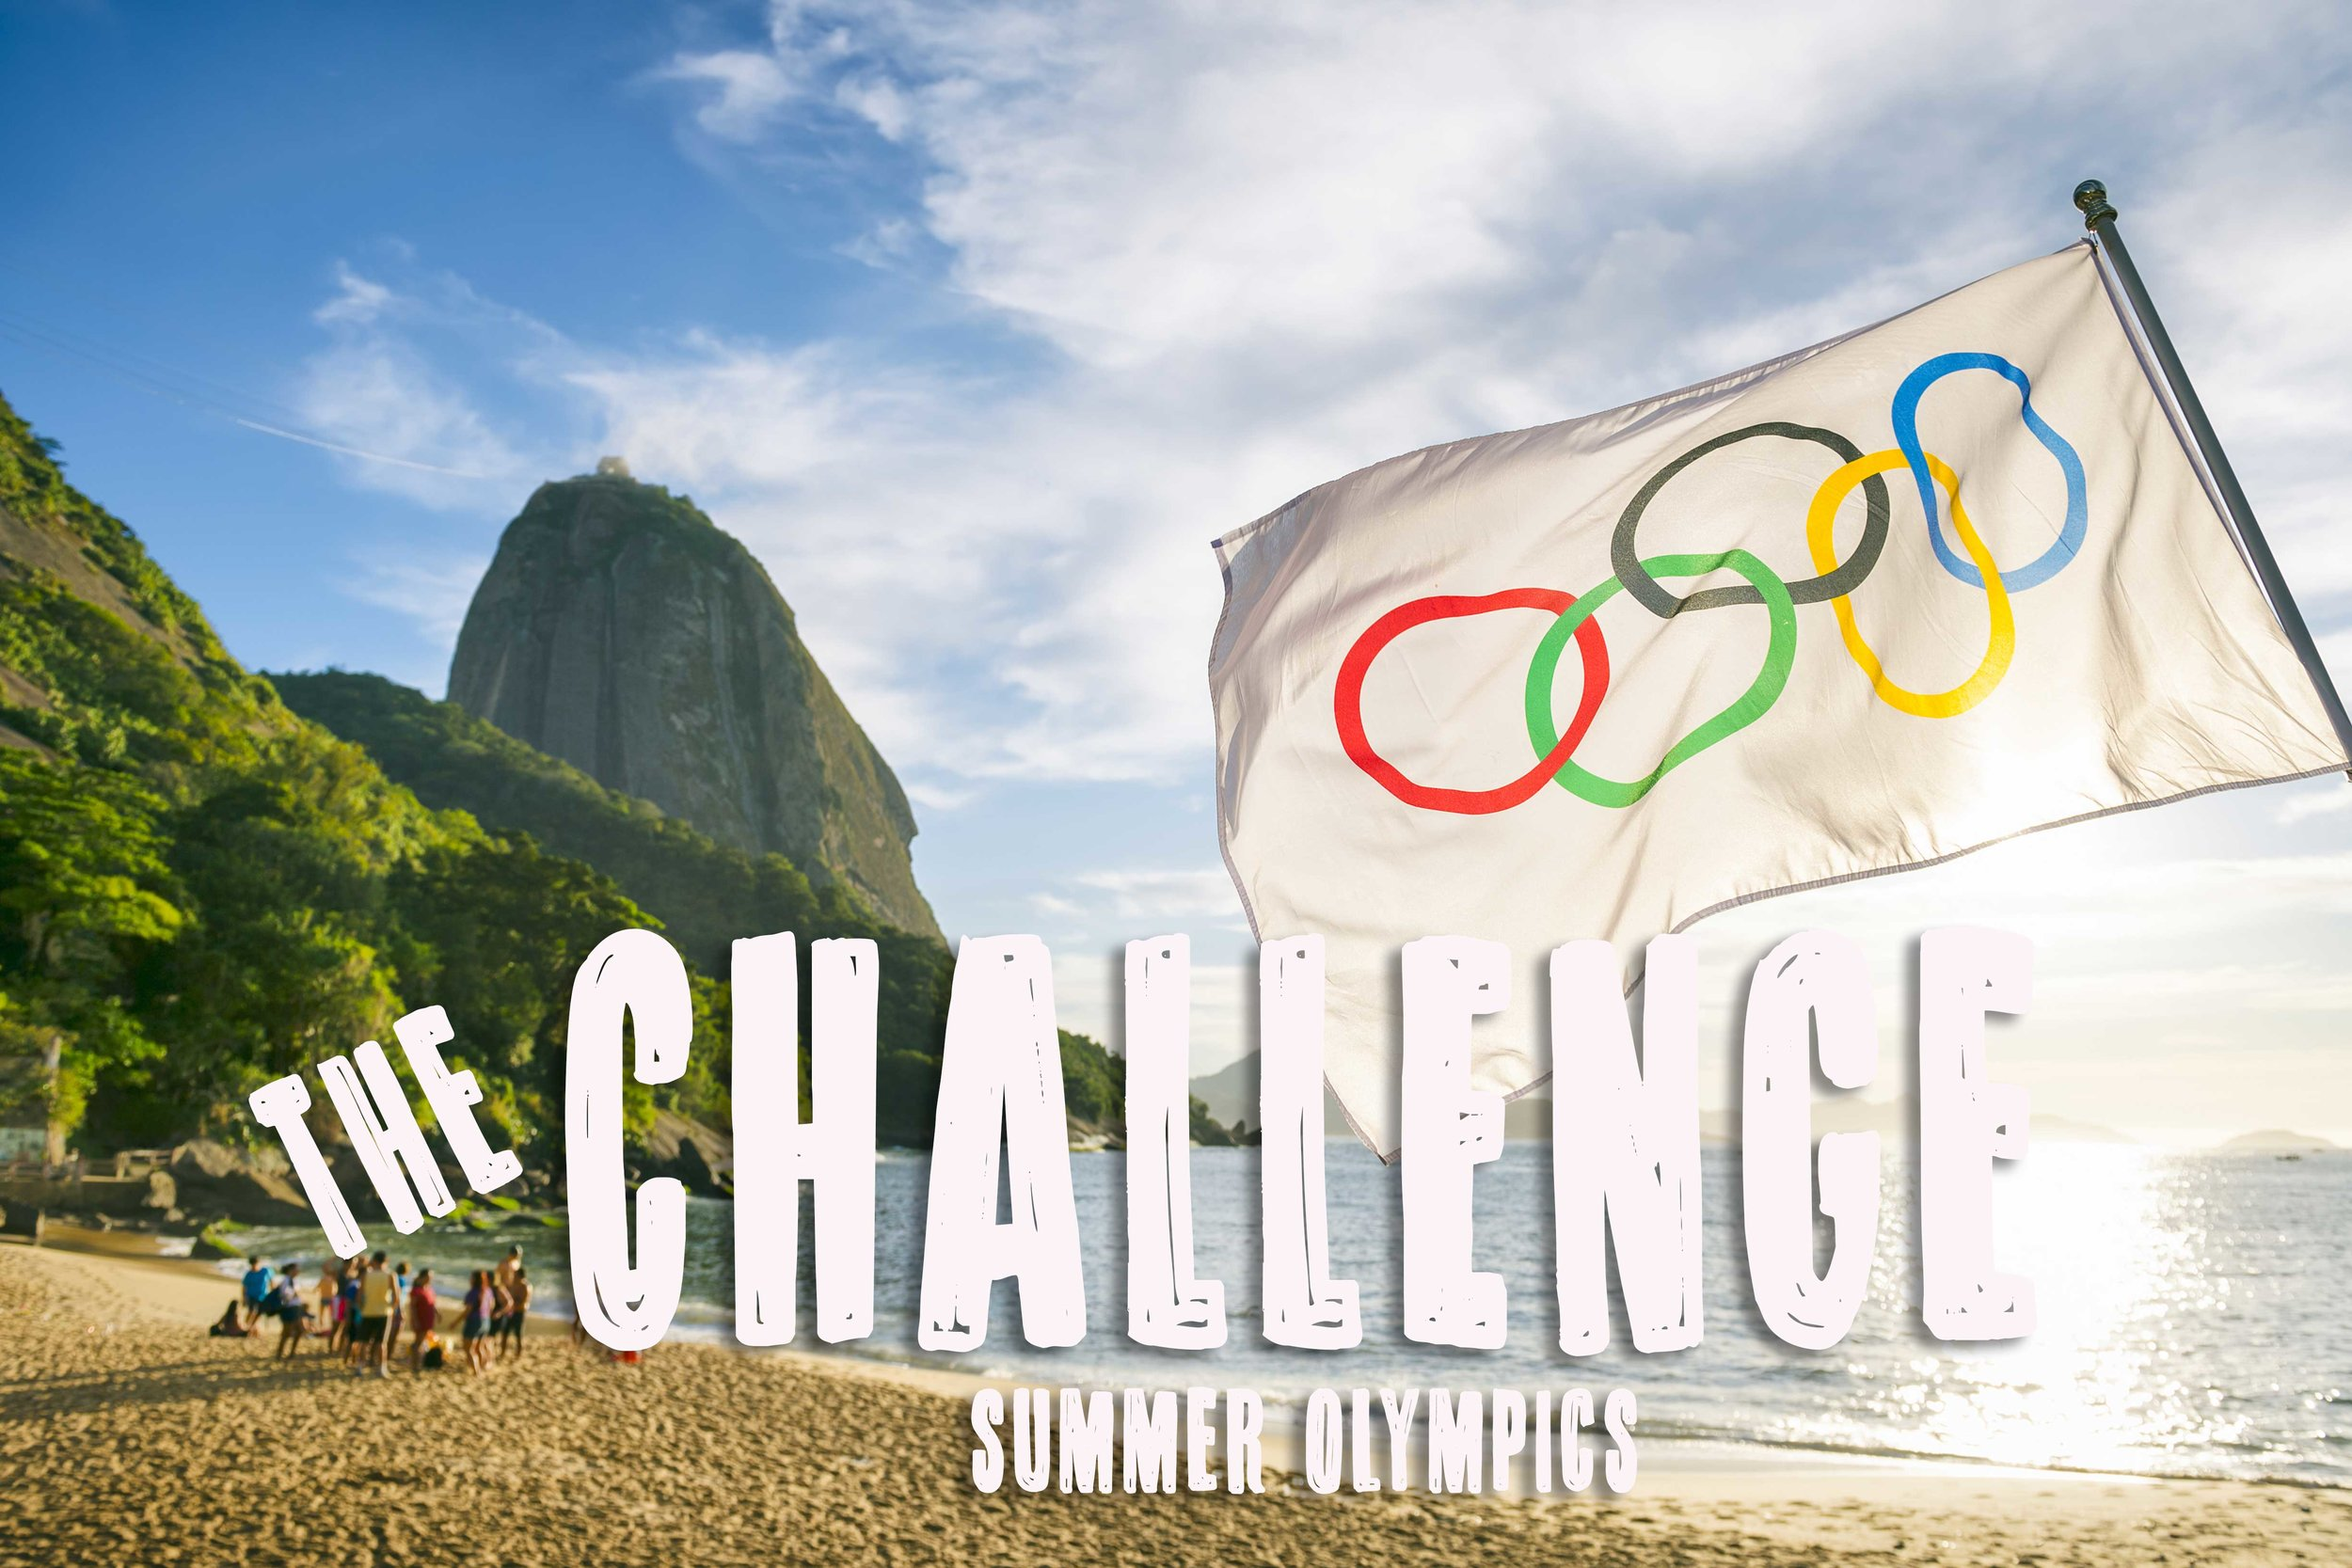 Summer Olympics - We want students to connect and make friends that last a life time. So over the summer, we will be putting the students into teams to compete for the ultimate prize. Your student can share with you what the prize is when they come home. Our hope is that through competing, your student will build relationships with others and the leaders of Unlock Church.